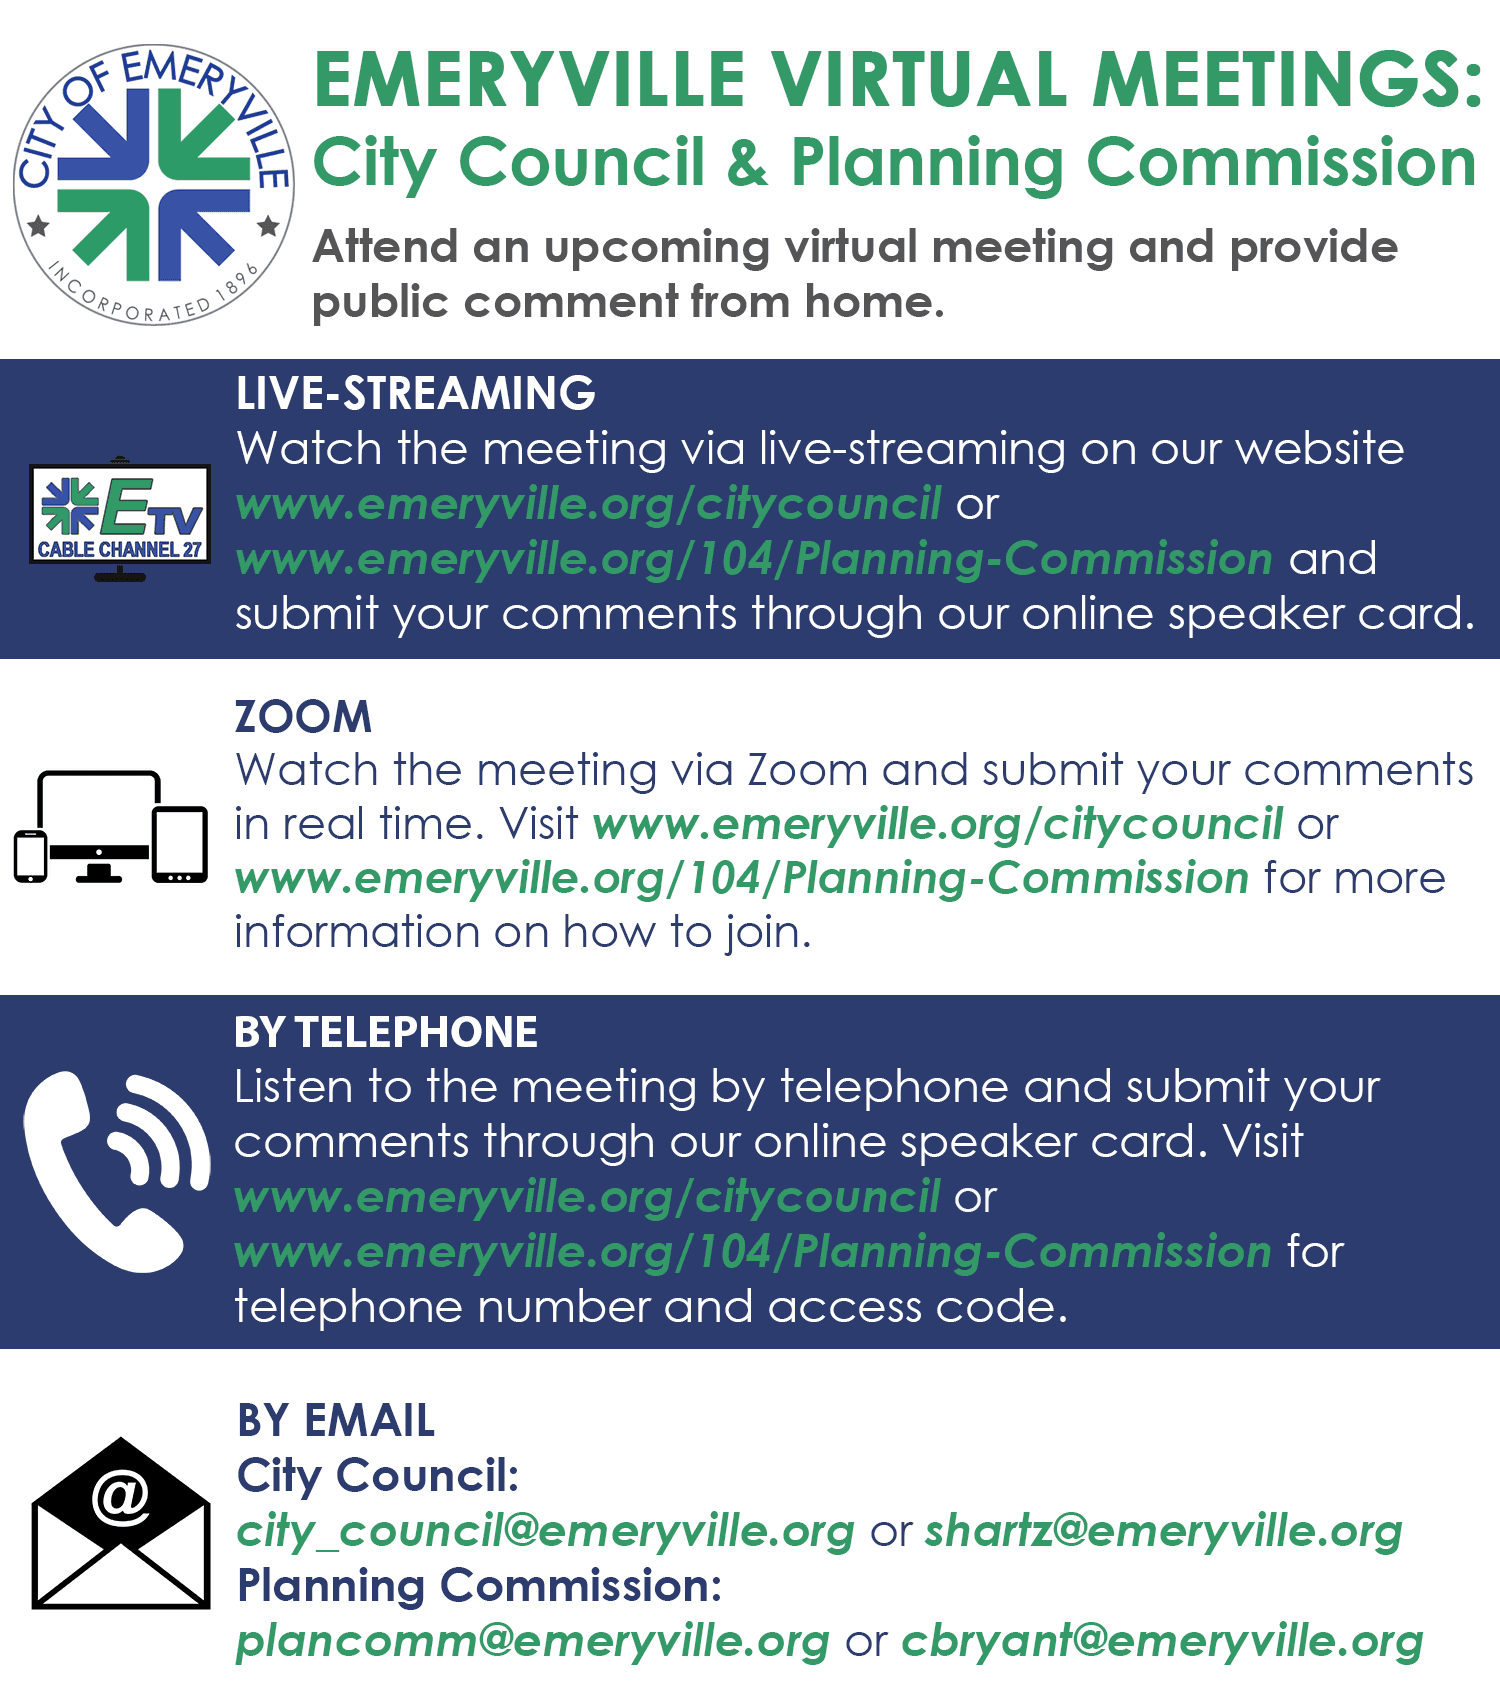 Emeryville Virtual Meetings